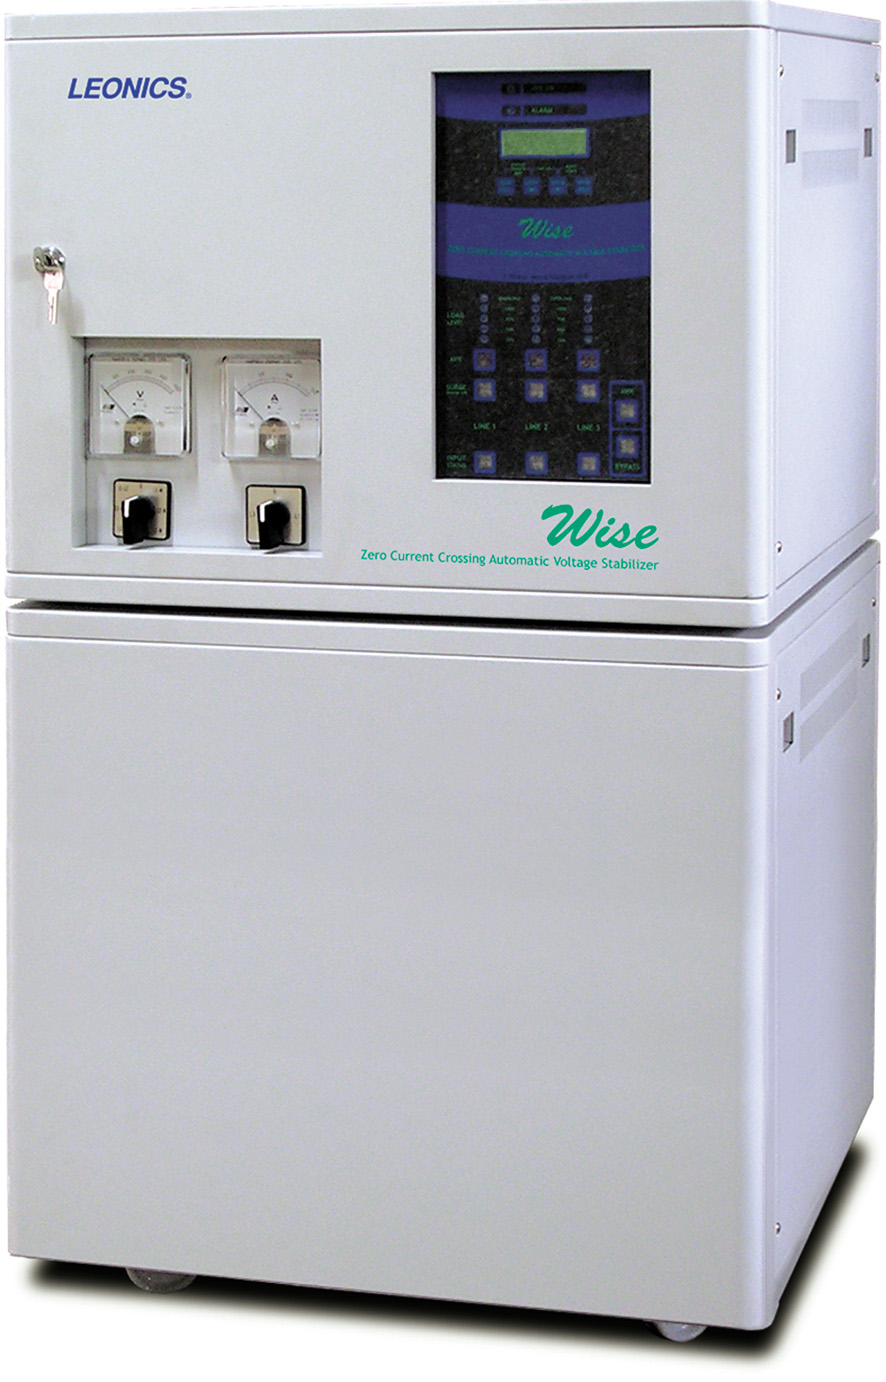 LEONICS WISE MP 33 series